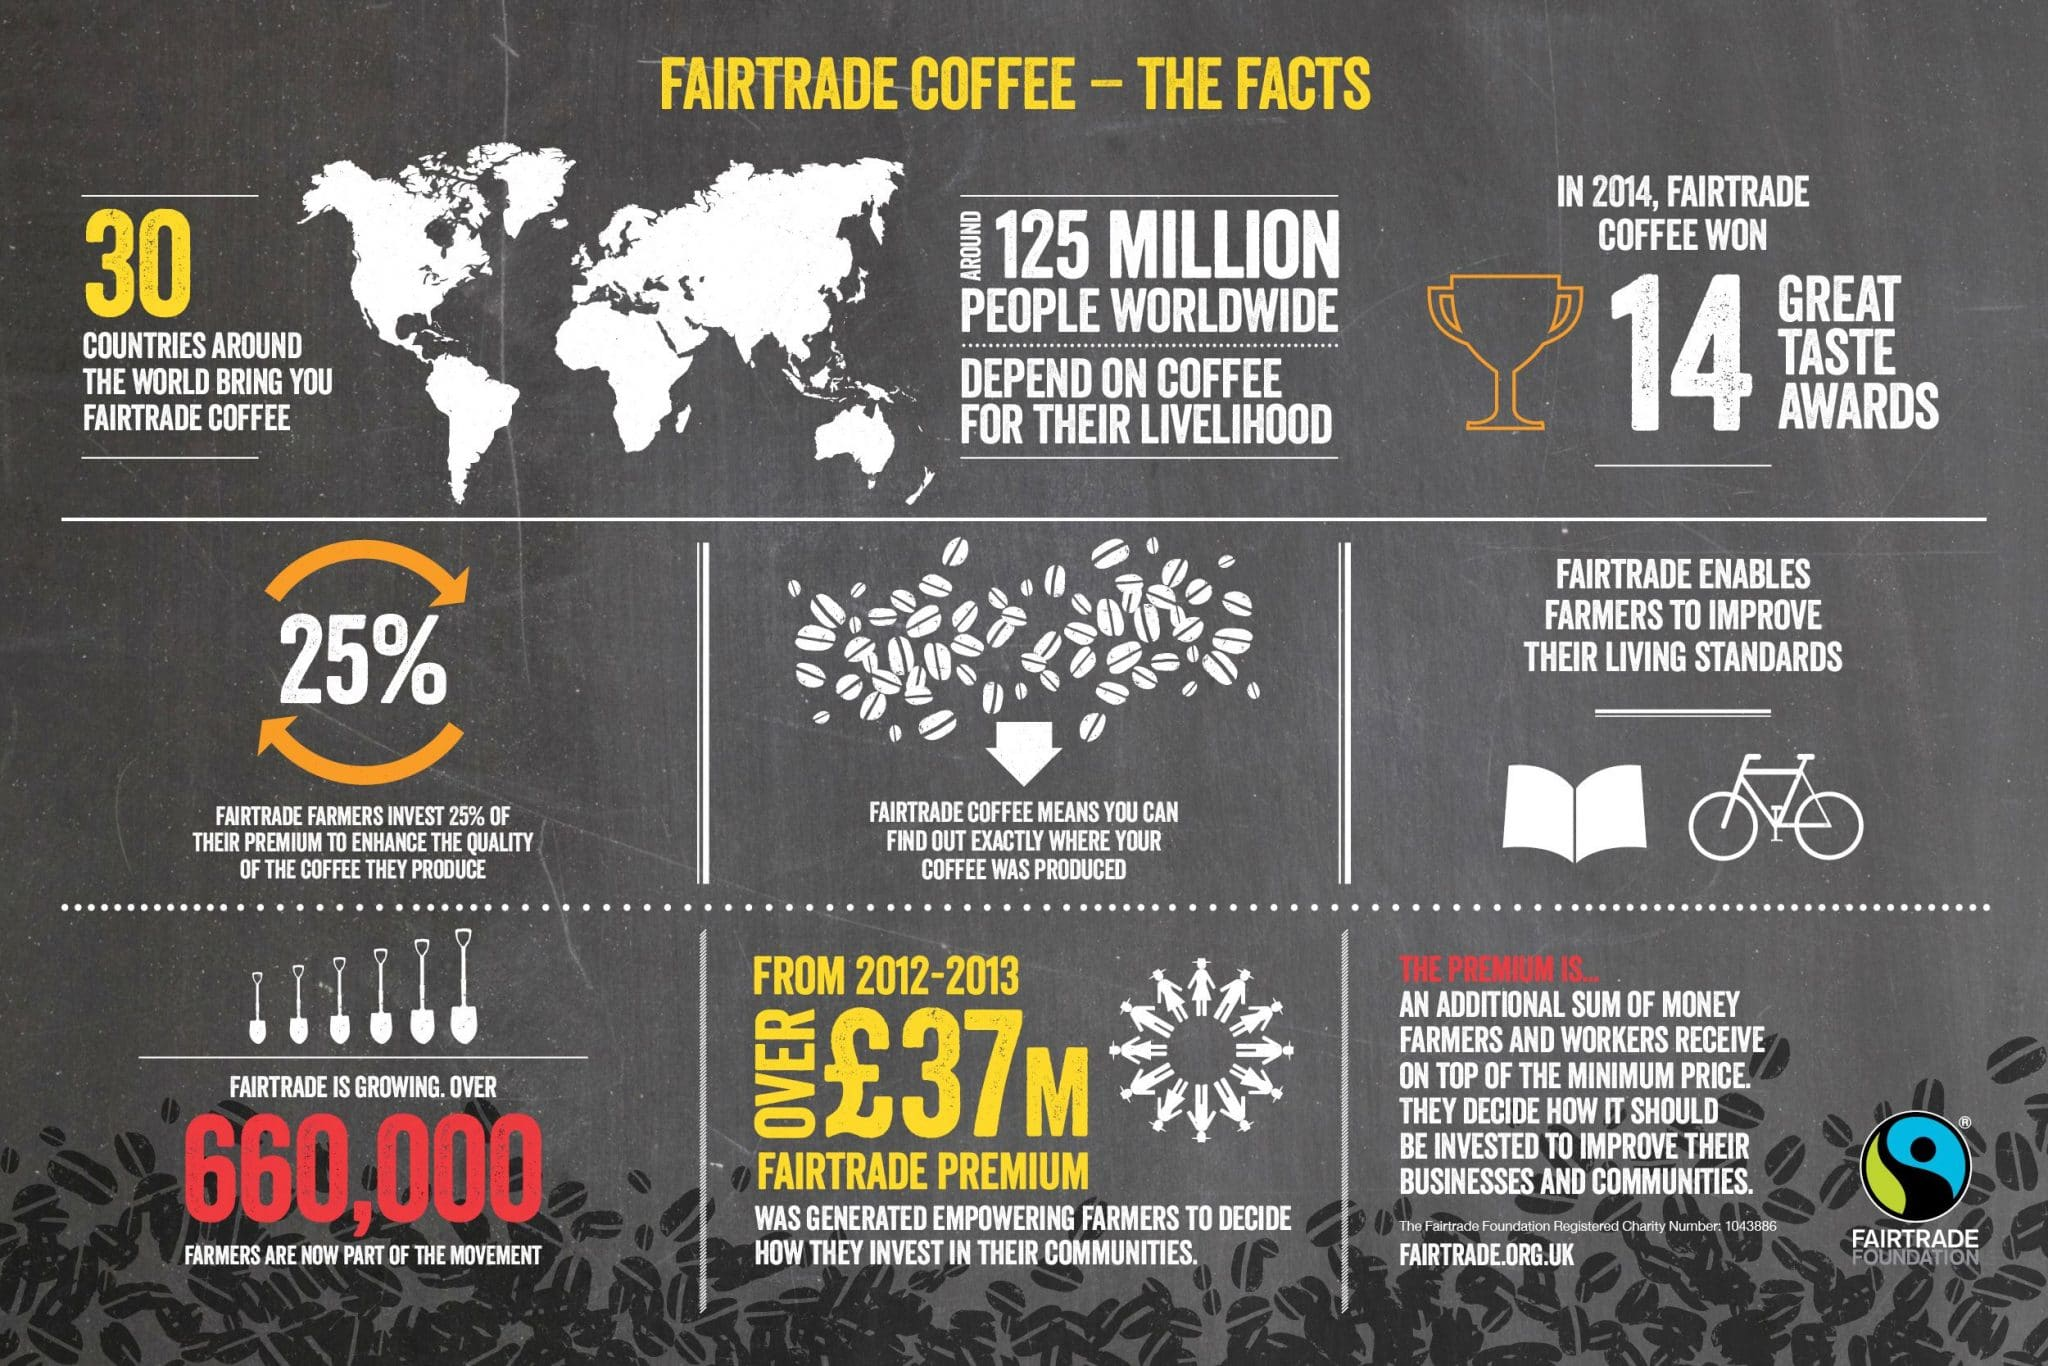 What is Fairtrade Coffee